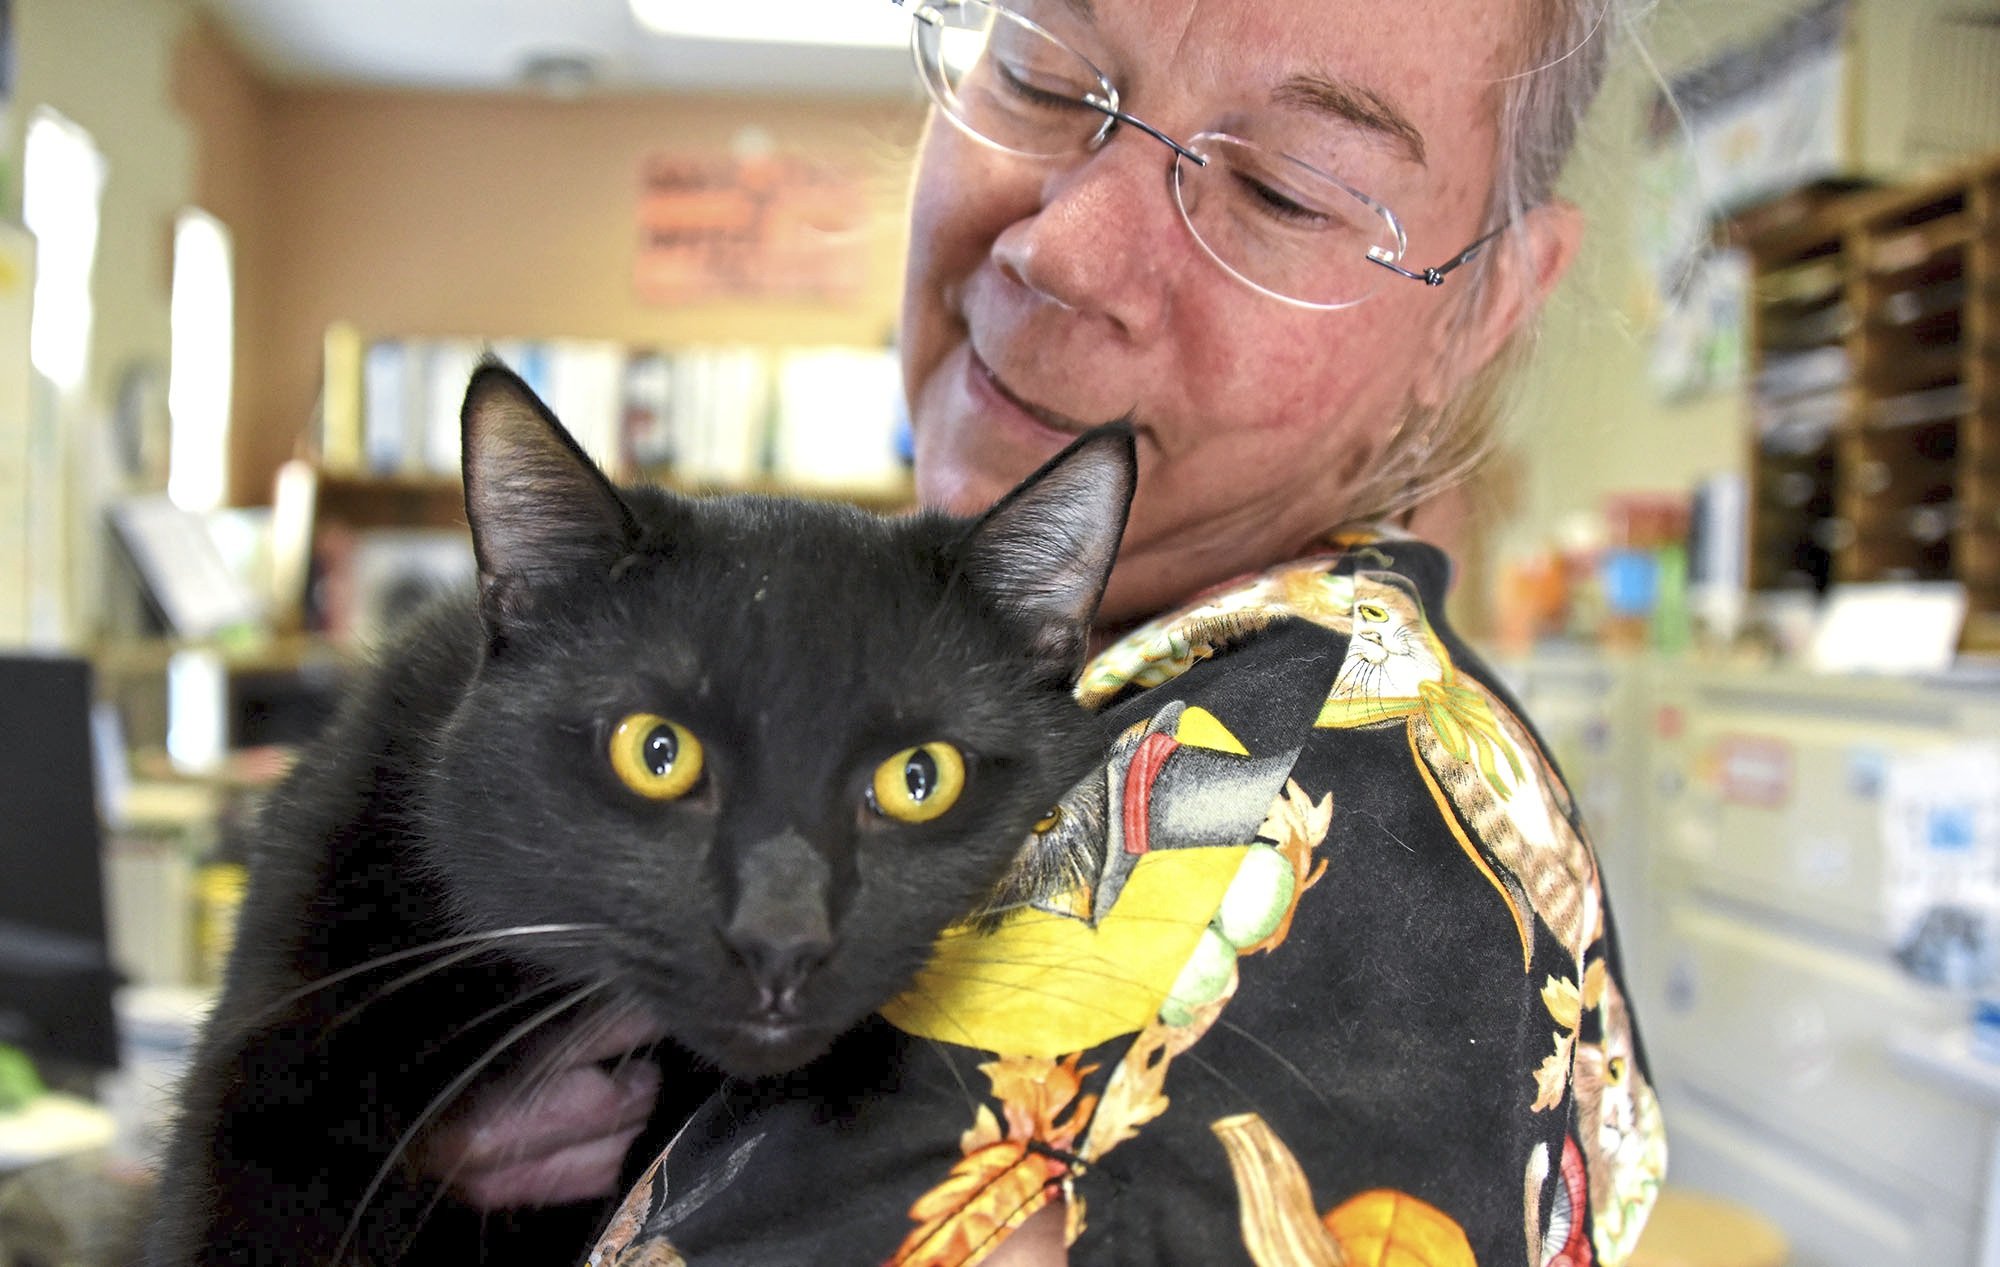 20171016dsPetTales1021Mag02-1 Betsy Kennon, a recently retired veterinarian who now volunteers at the shelter, holds a cat named Spaz at Animal Protectors Of Allegheny Valley.